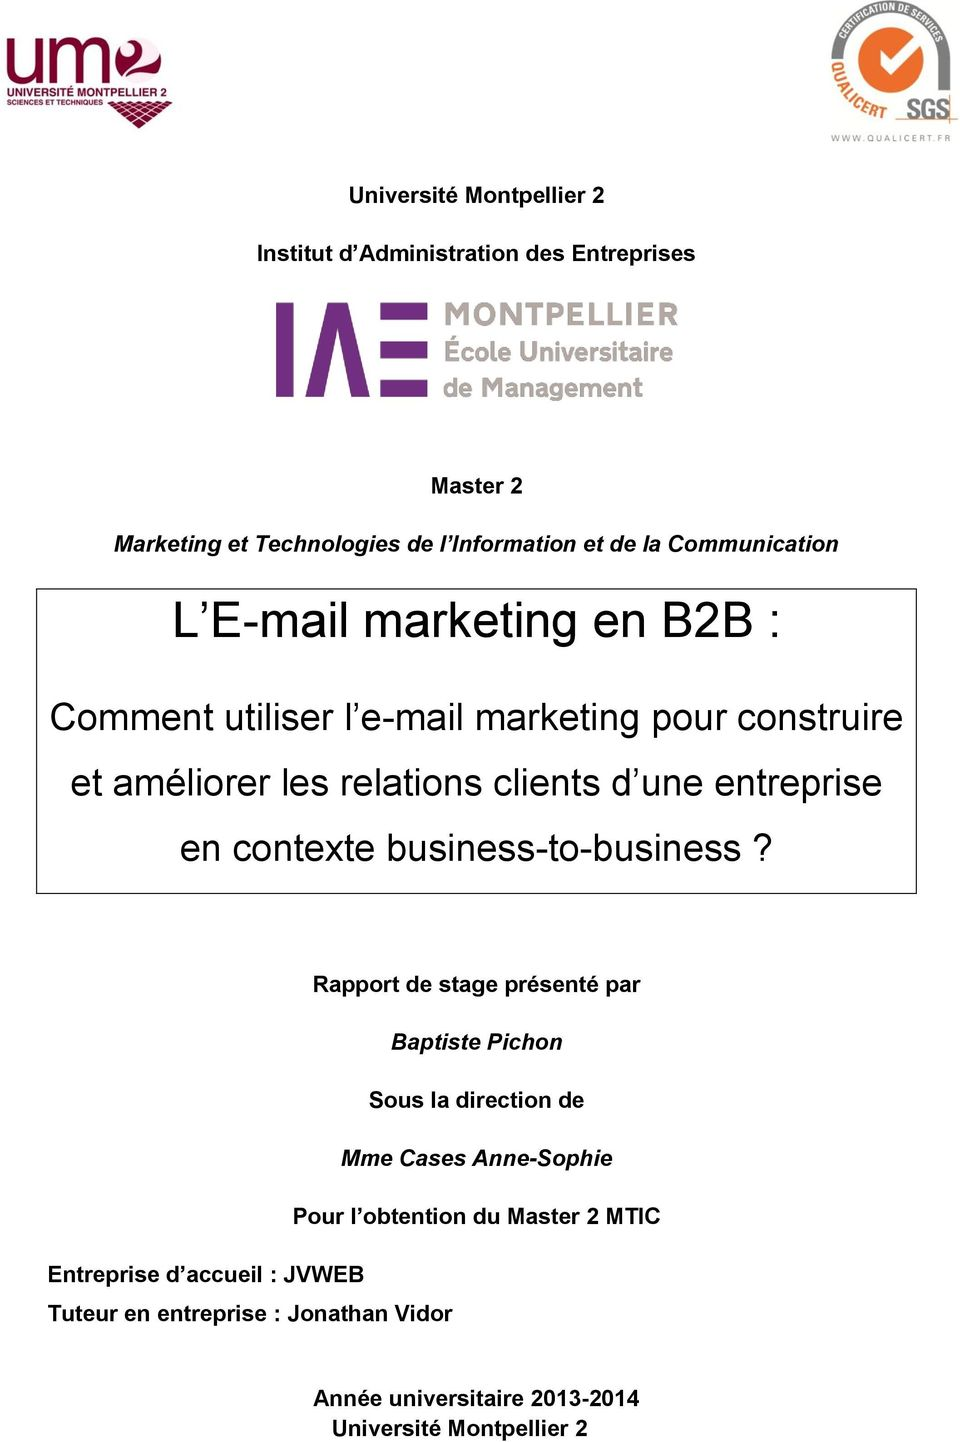 entreprise en contexte business-to-business?